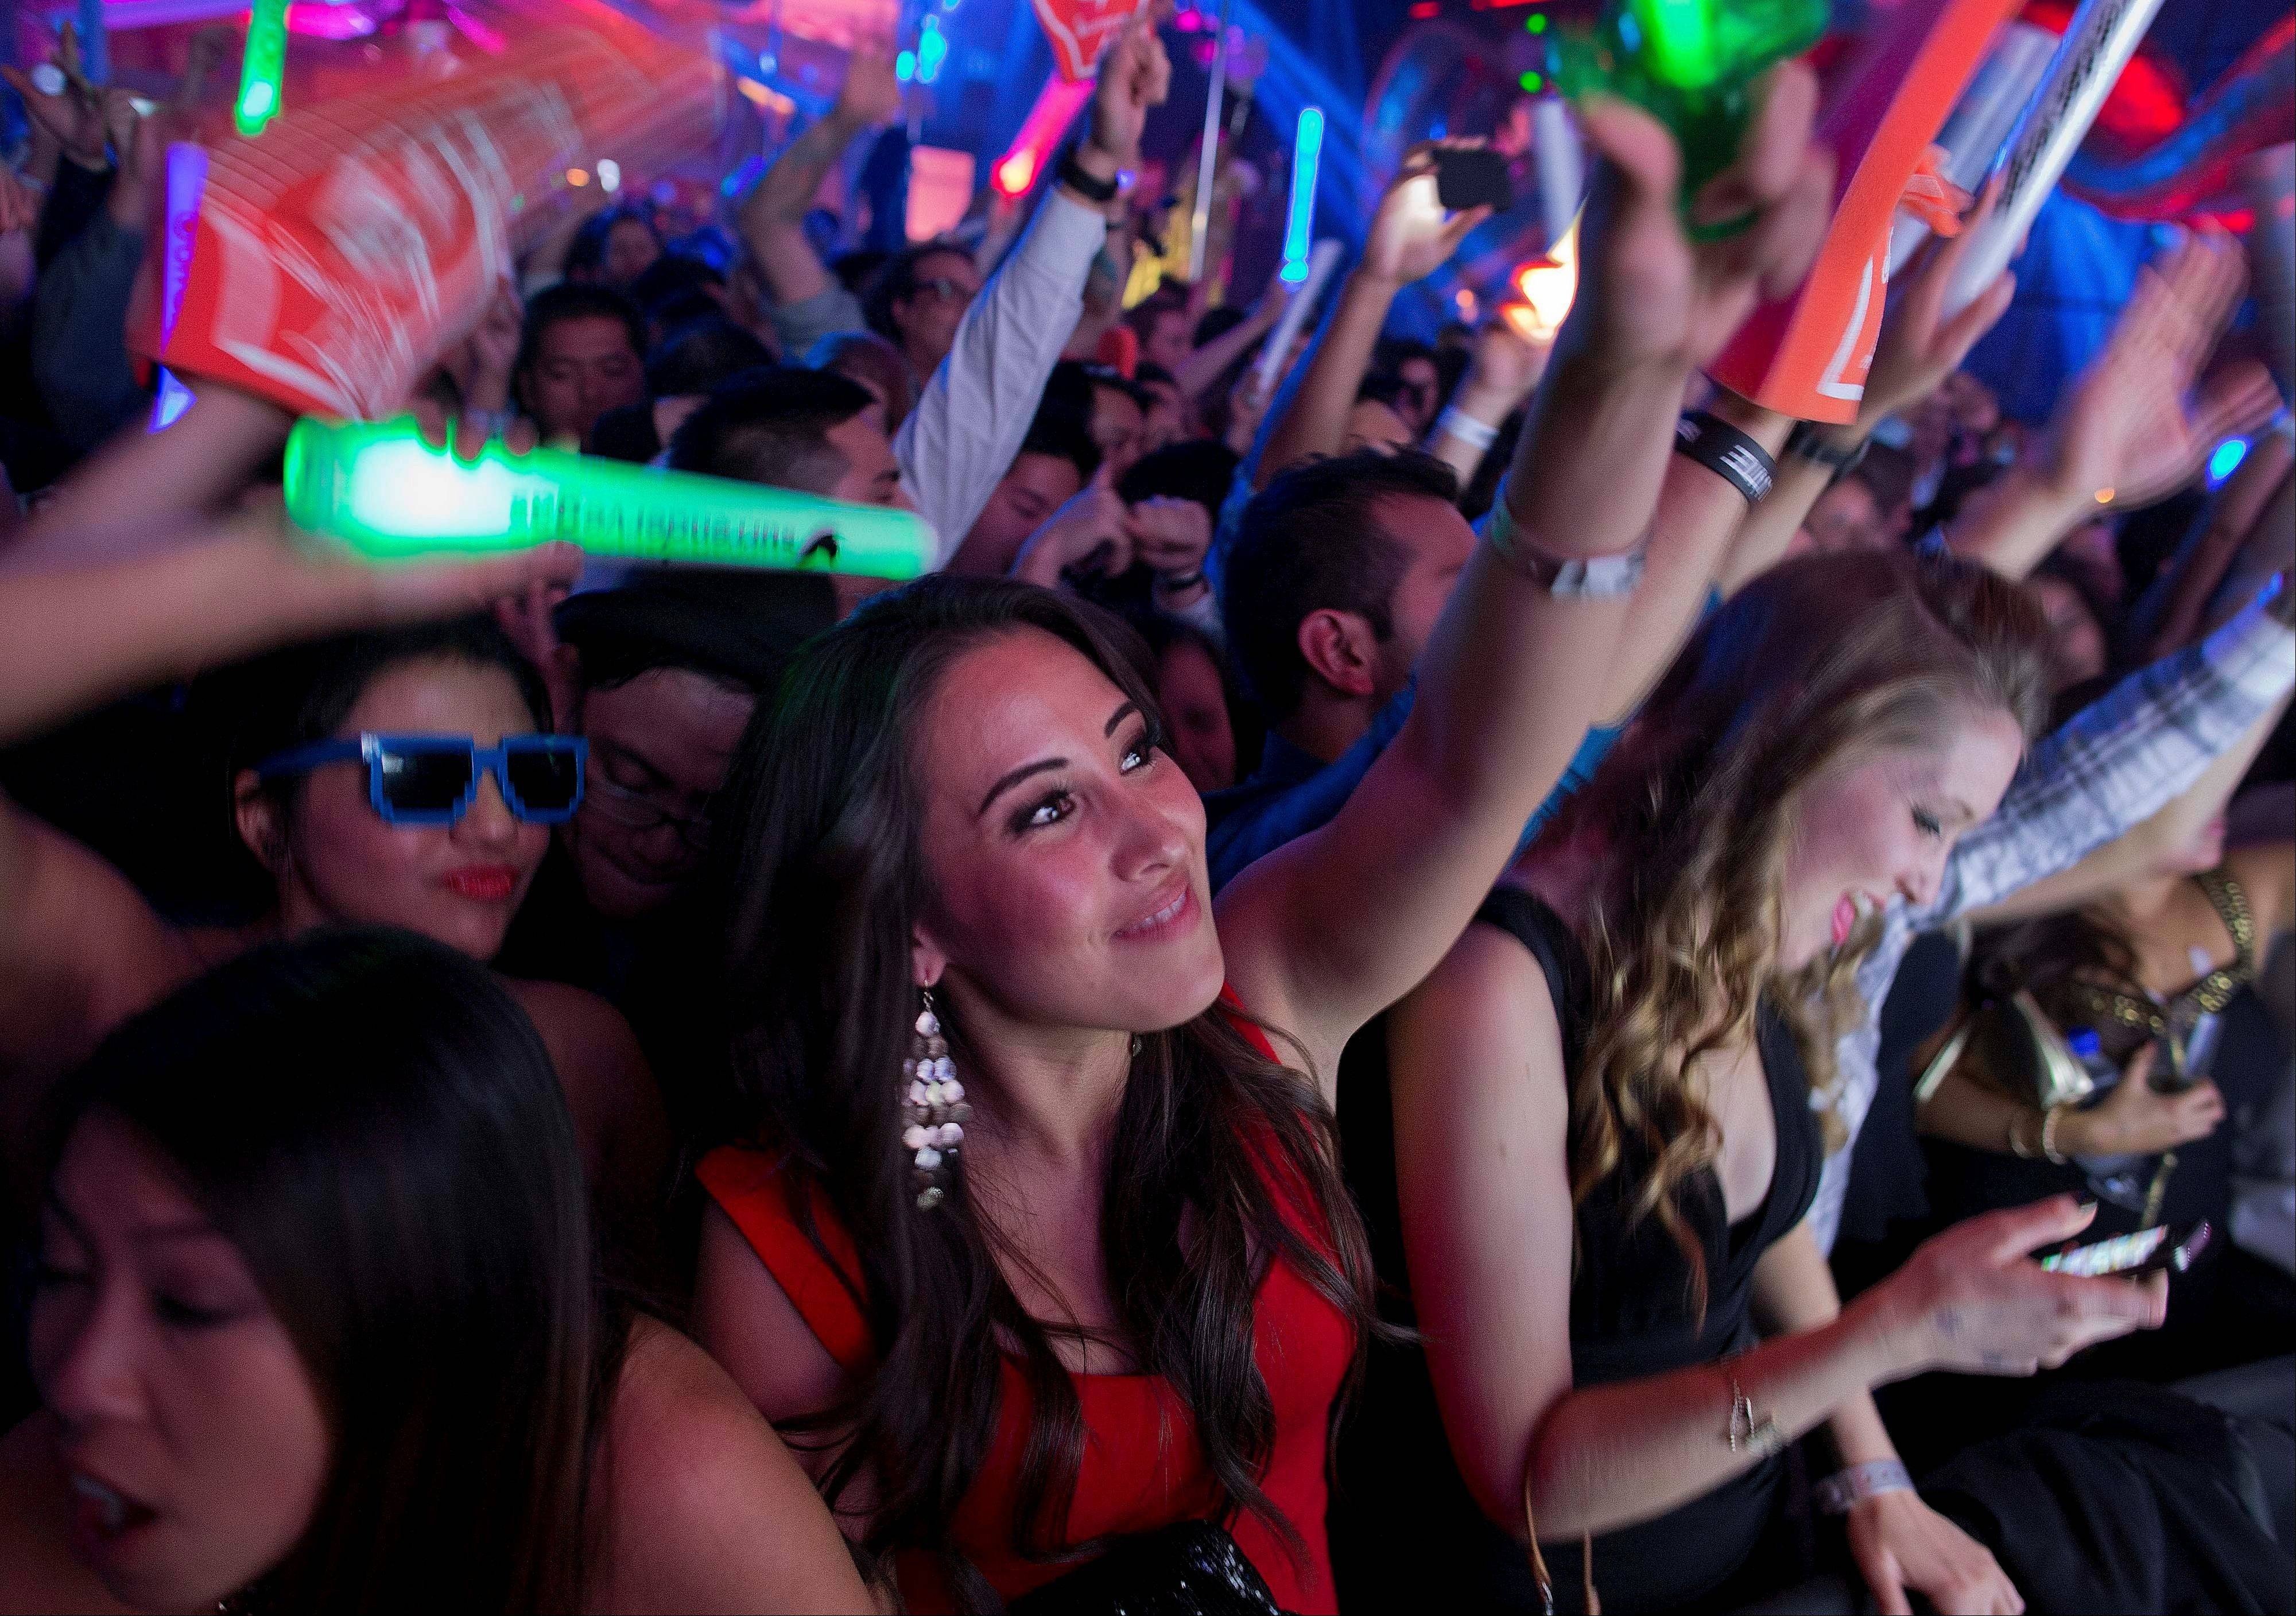 Revelers dance to the music played by DJ Cedric Gervais at the Surrender nightclub in Las Vegas. The rise of the Vegas super-club coincides with the decline of the town's gambling supremacy.